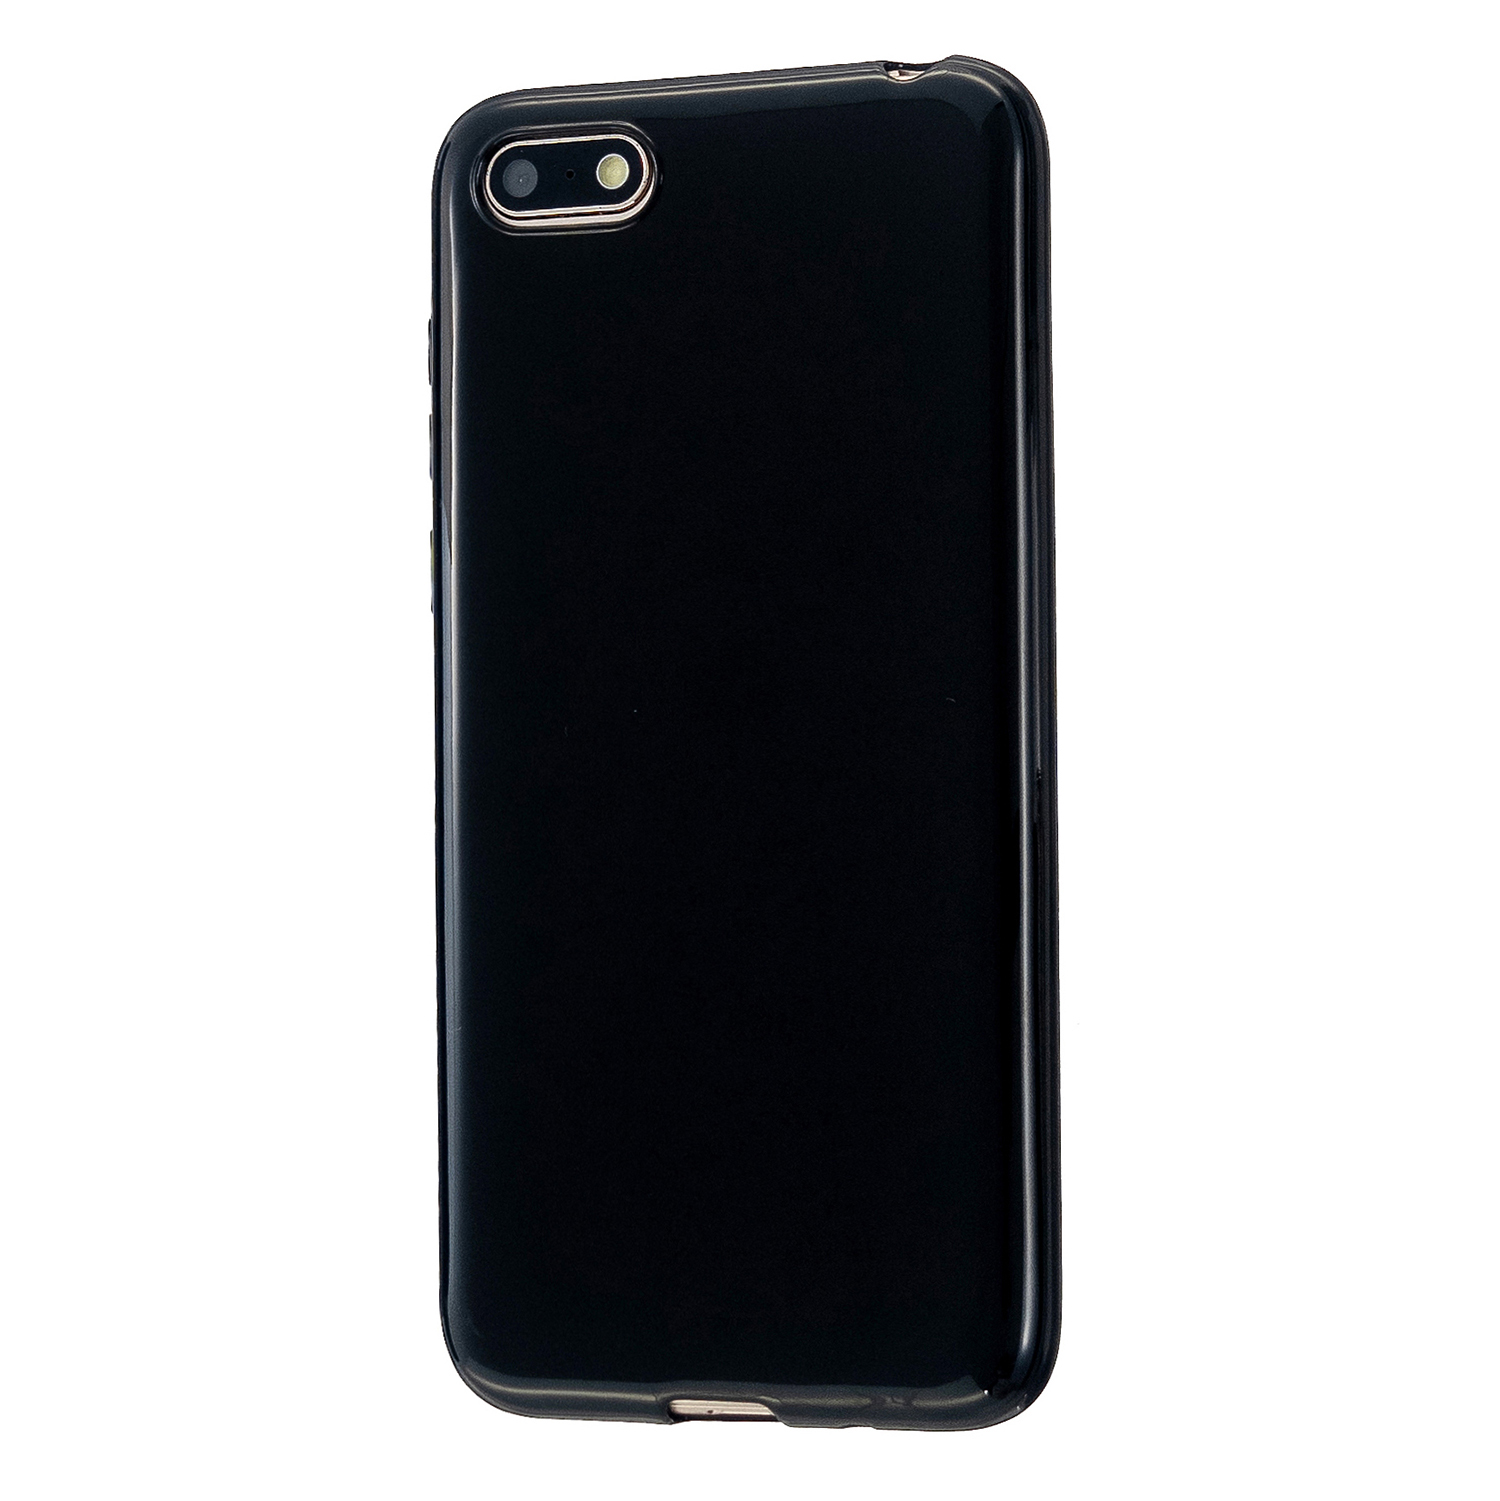 For HUAWEI Y5 2018/2019 TPU Phone Case Simple Profile Delicate Finish Cellphone Cover Full Body Protection Bright black